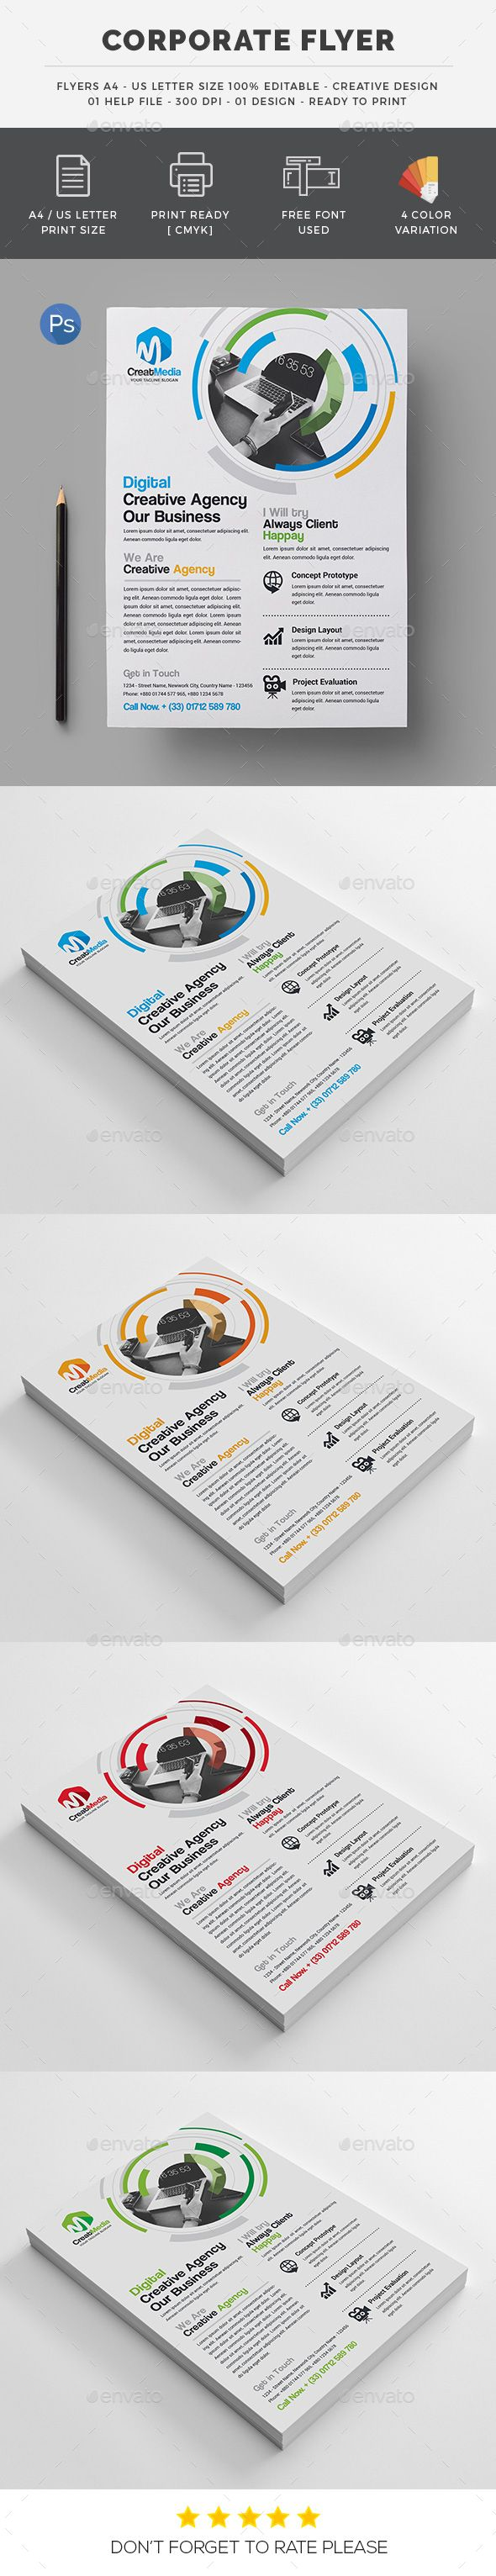 The 7 best flyers images on pinterest flyer template promotional business flyer fandeluxe Image collections